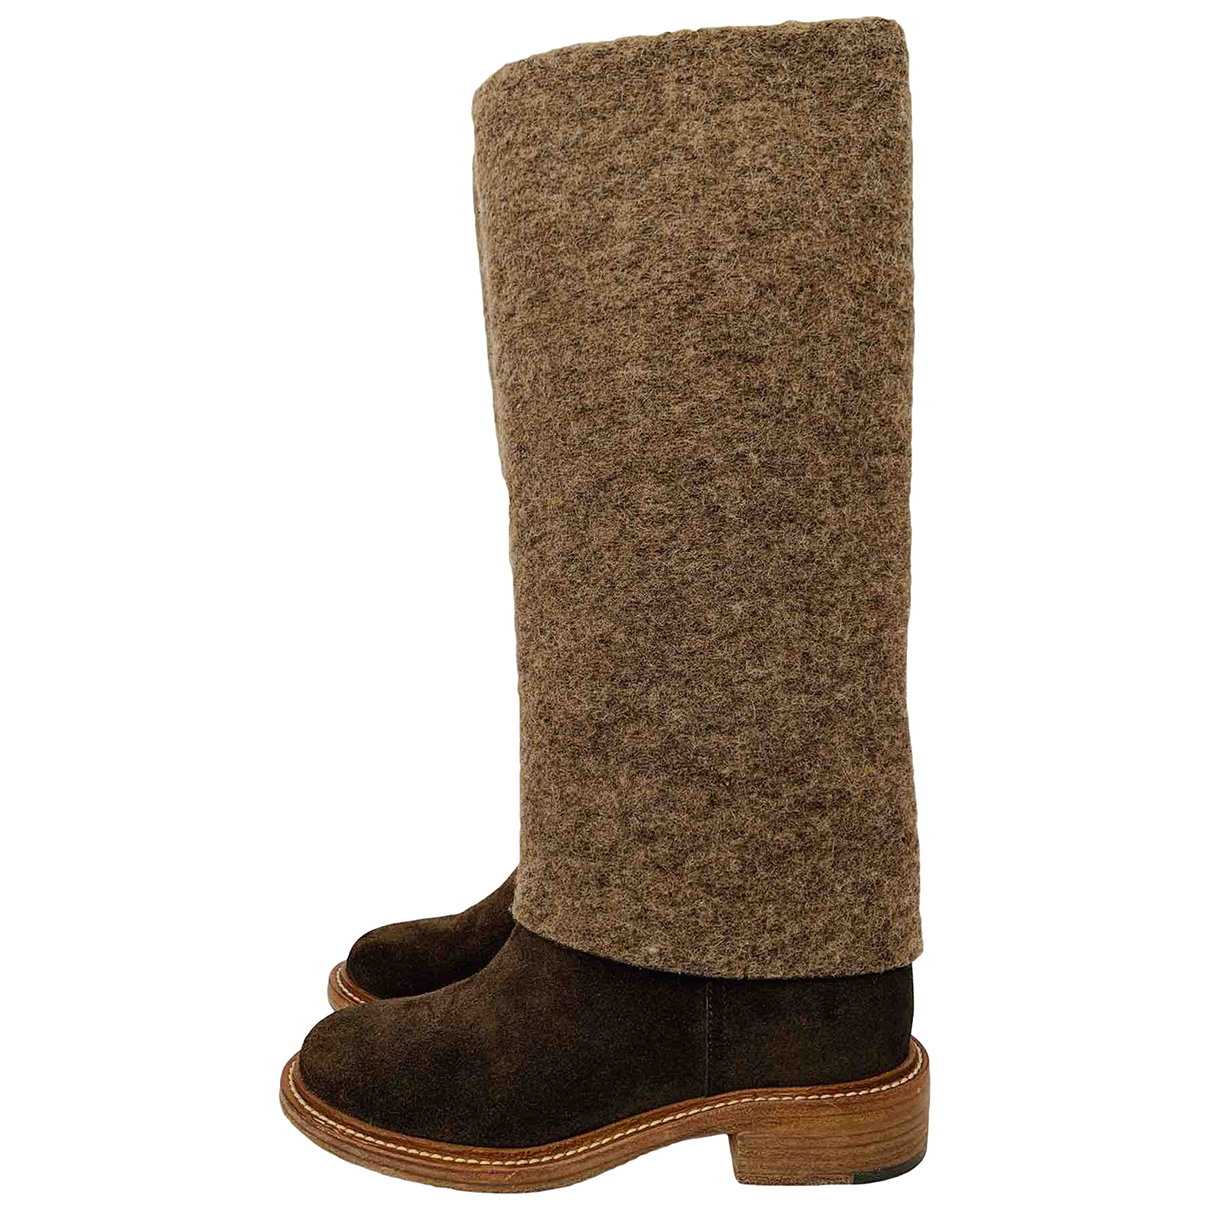 Chanel \N Brown Suede Boots for Women 38 EU